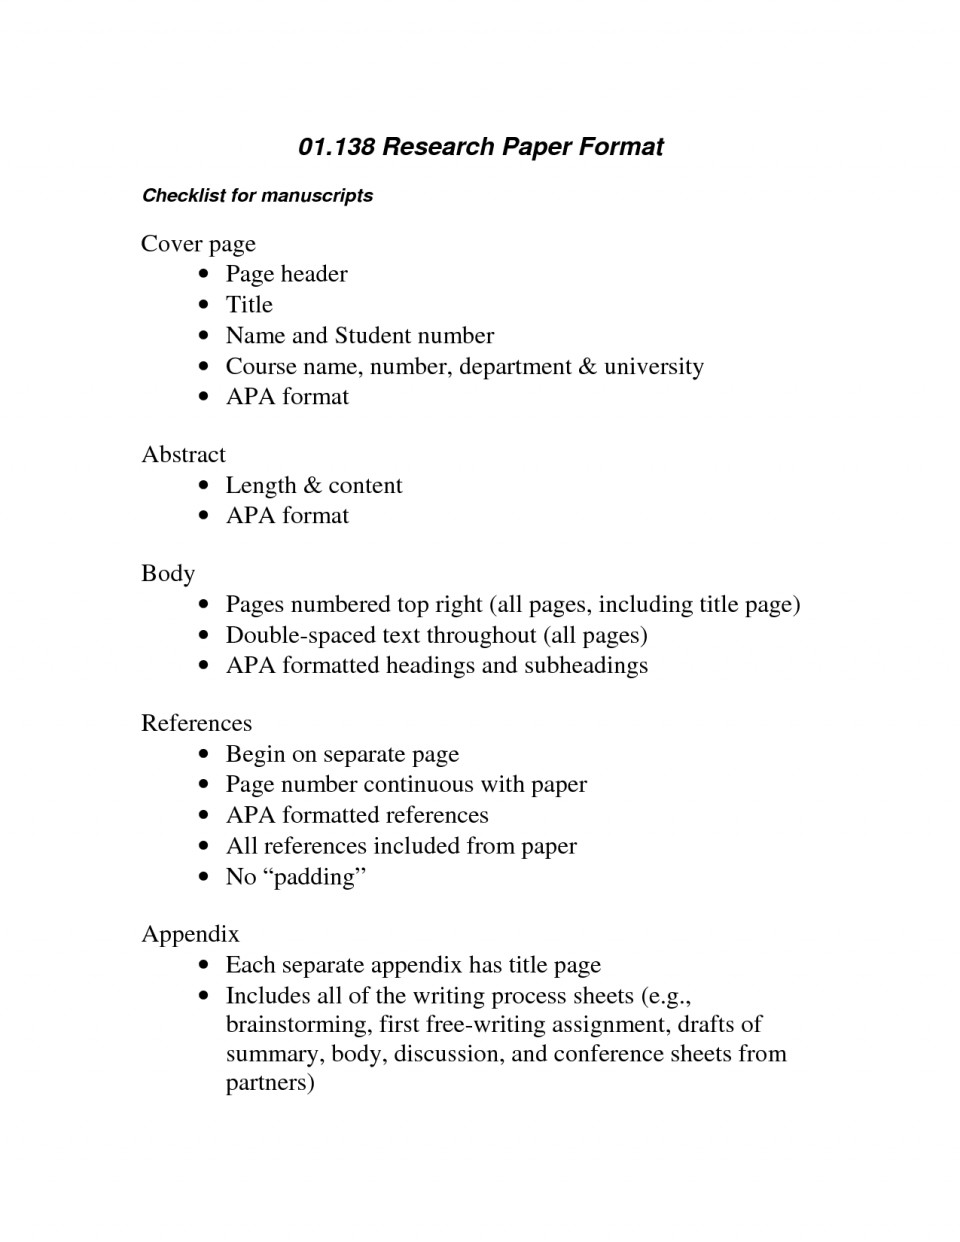 008 Research Paper Appendix In Pdf Incredible Example Of Appendices 960